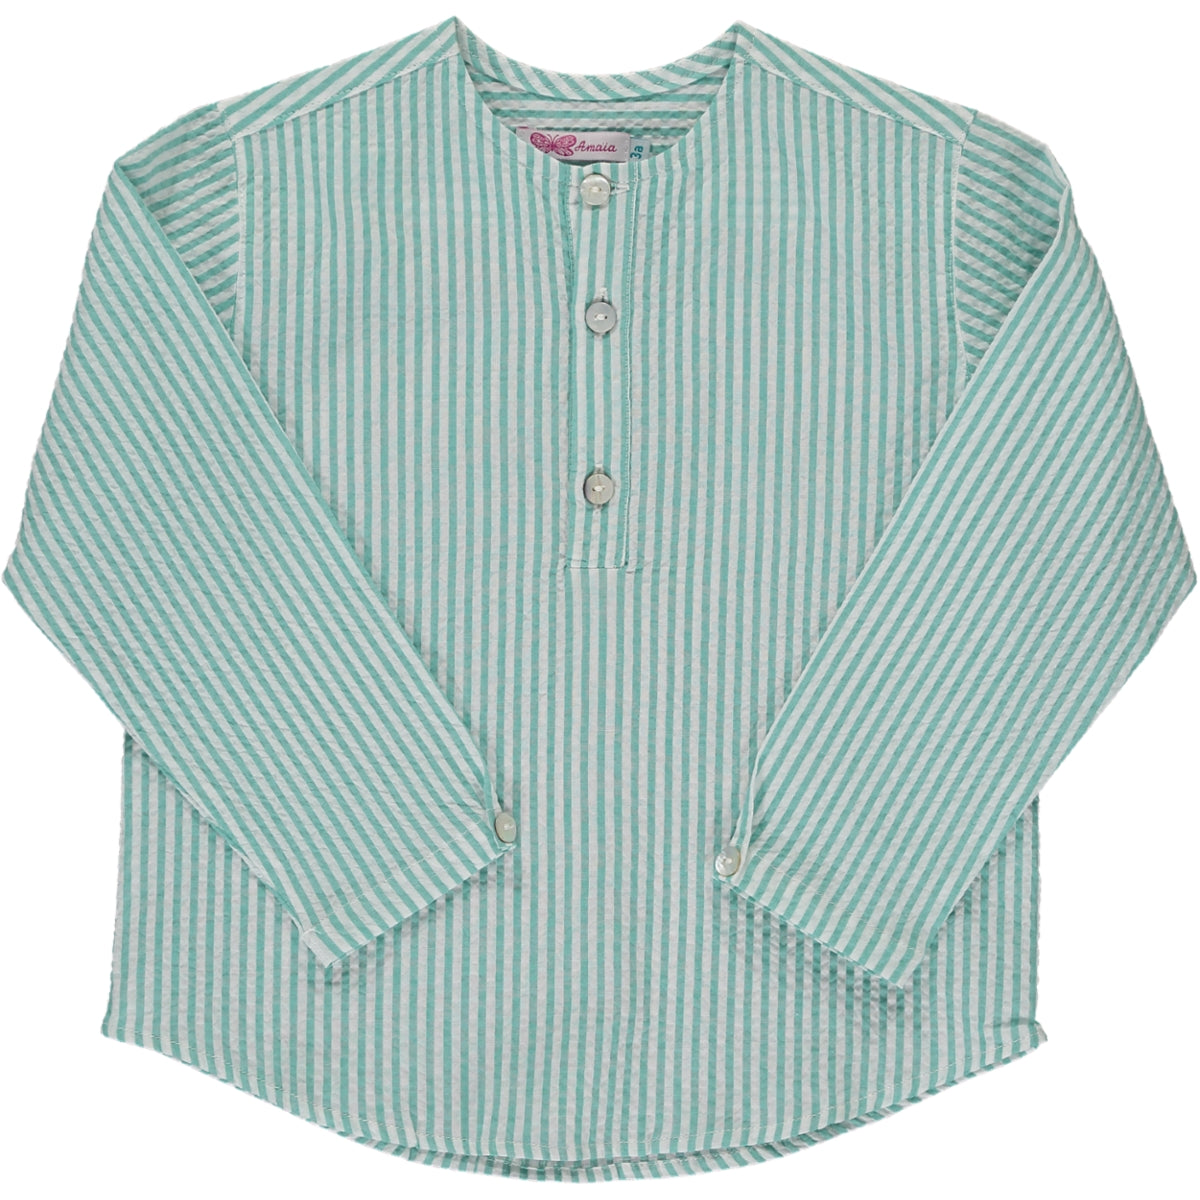 Victor Shirt Mint Green